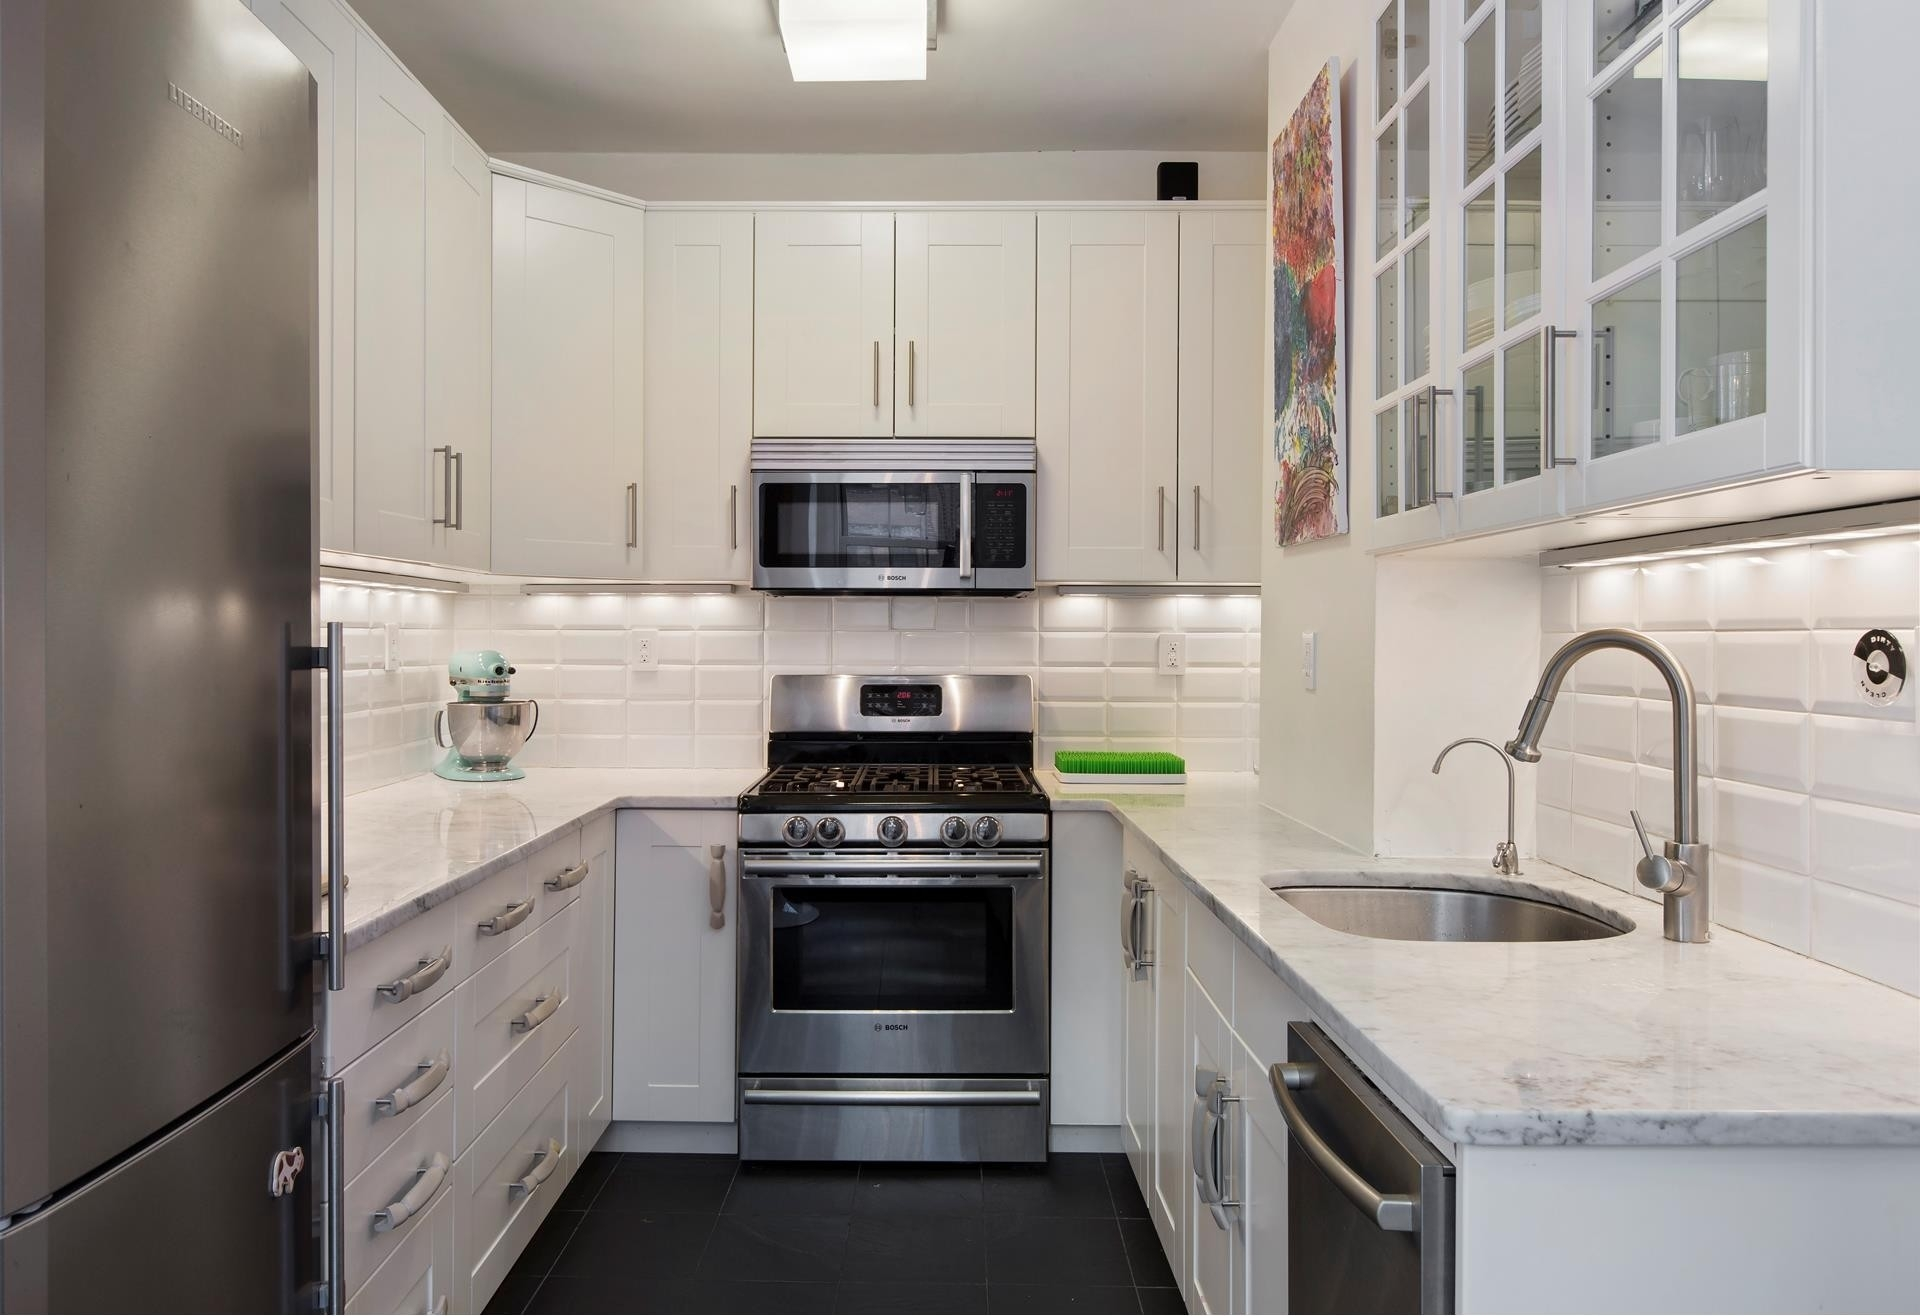 3. Co-op Properties for Sale at Wellston, 161 W 75TH ST , 4C Upper West Side, New York, NY 10023